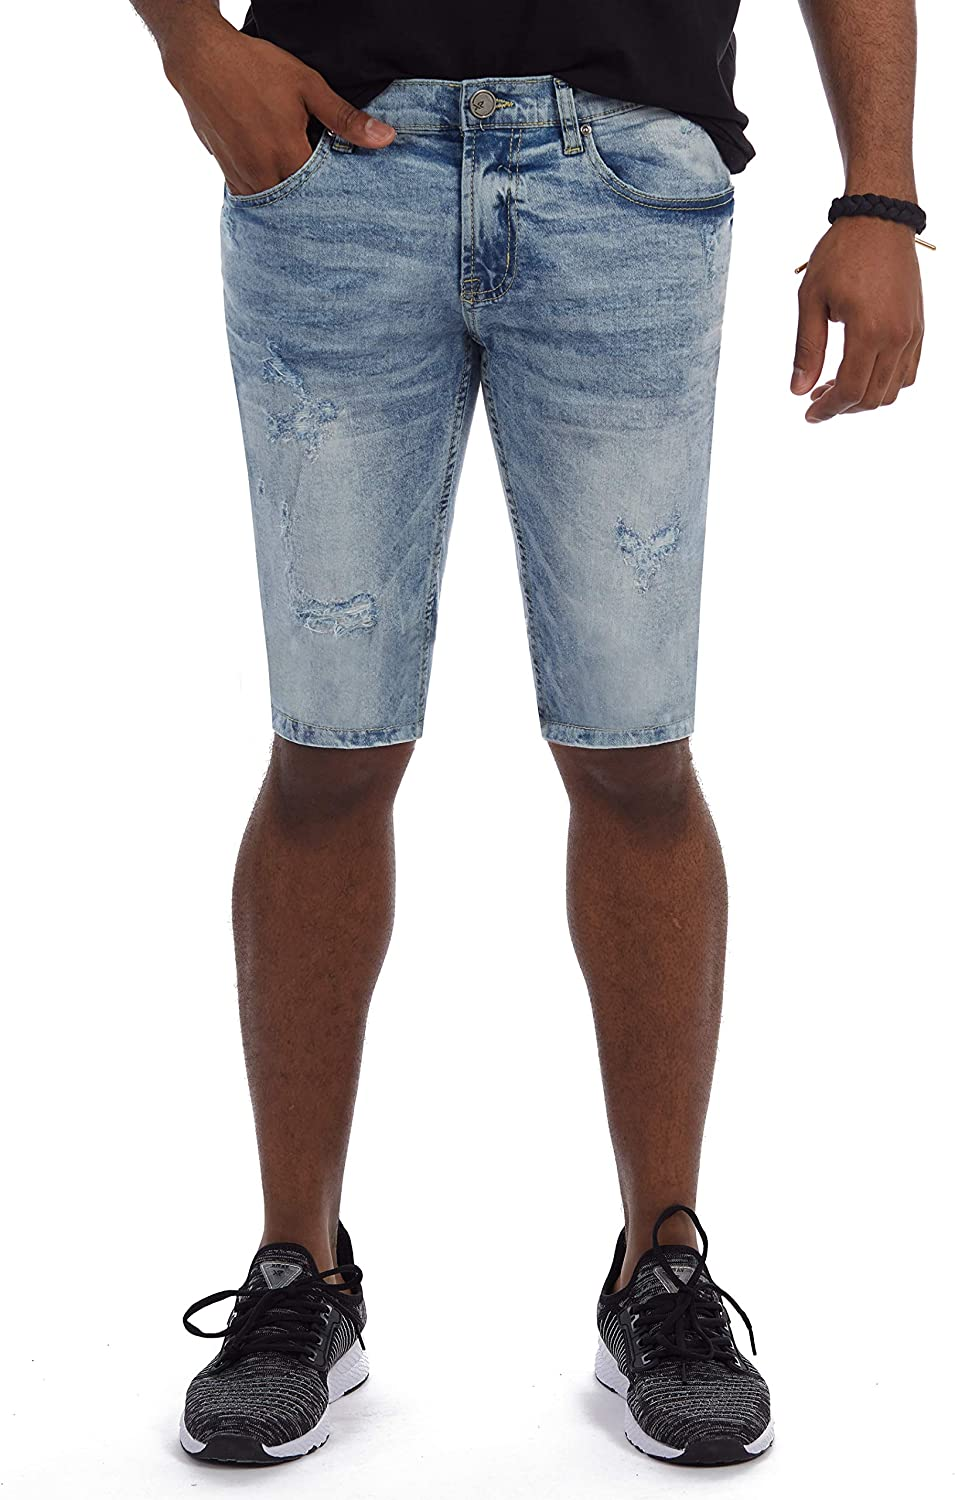 Mens Stretch Casual Denim Shorts Slim Fit X RAY Slim Jean Shorts for Men Rolled Up Cuff Bermuda Short Distressed